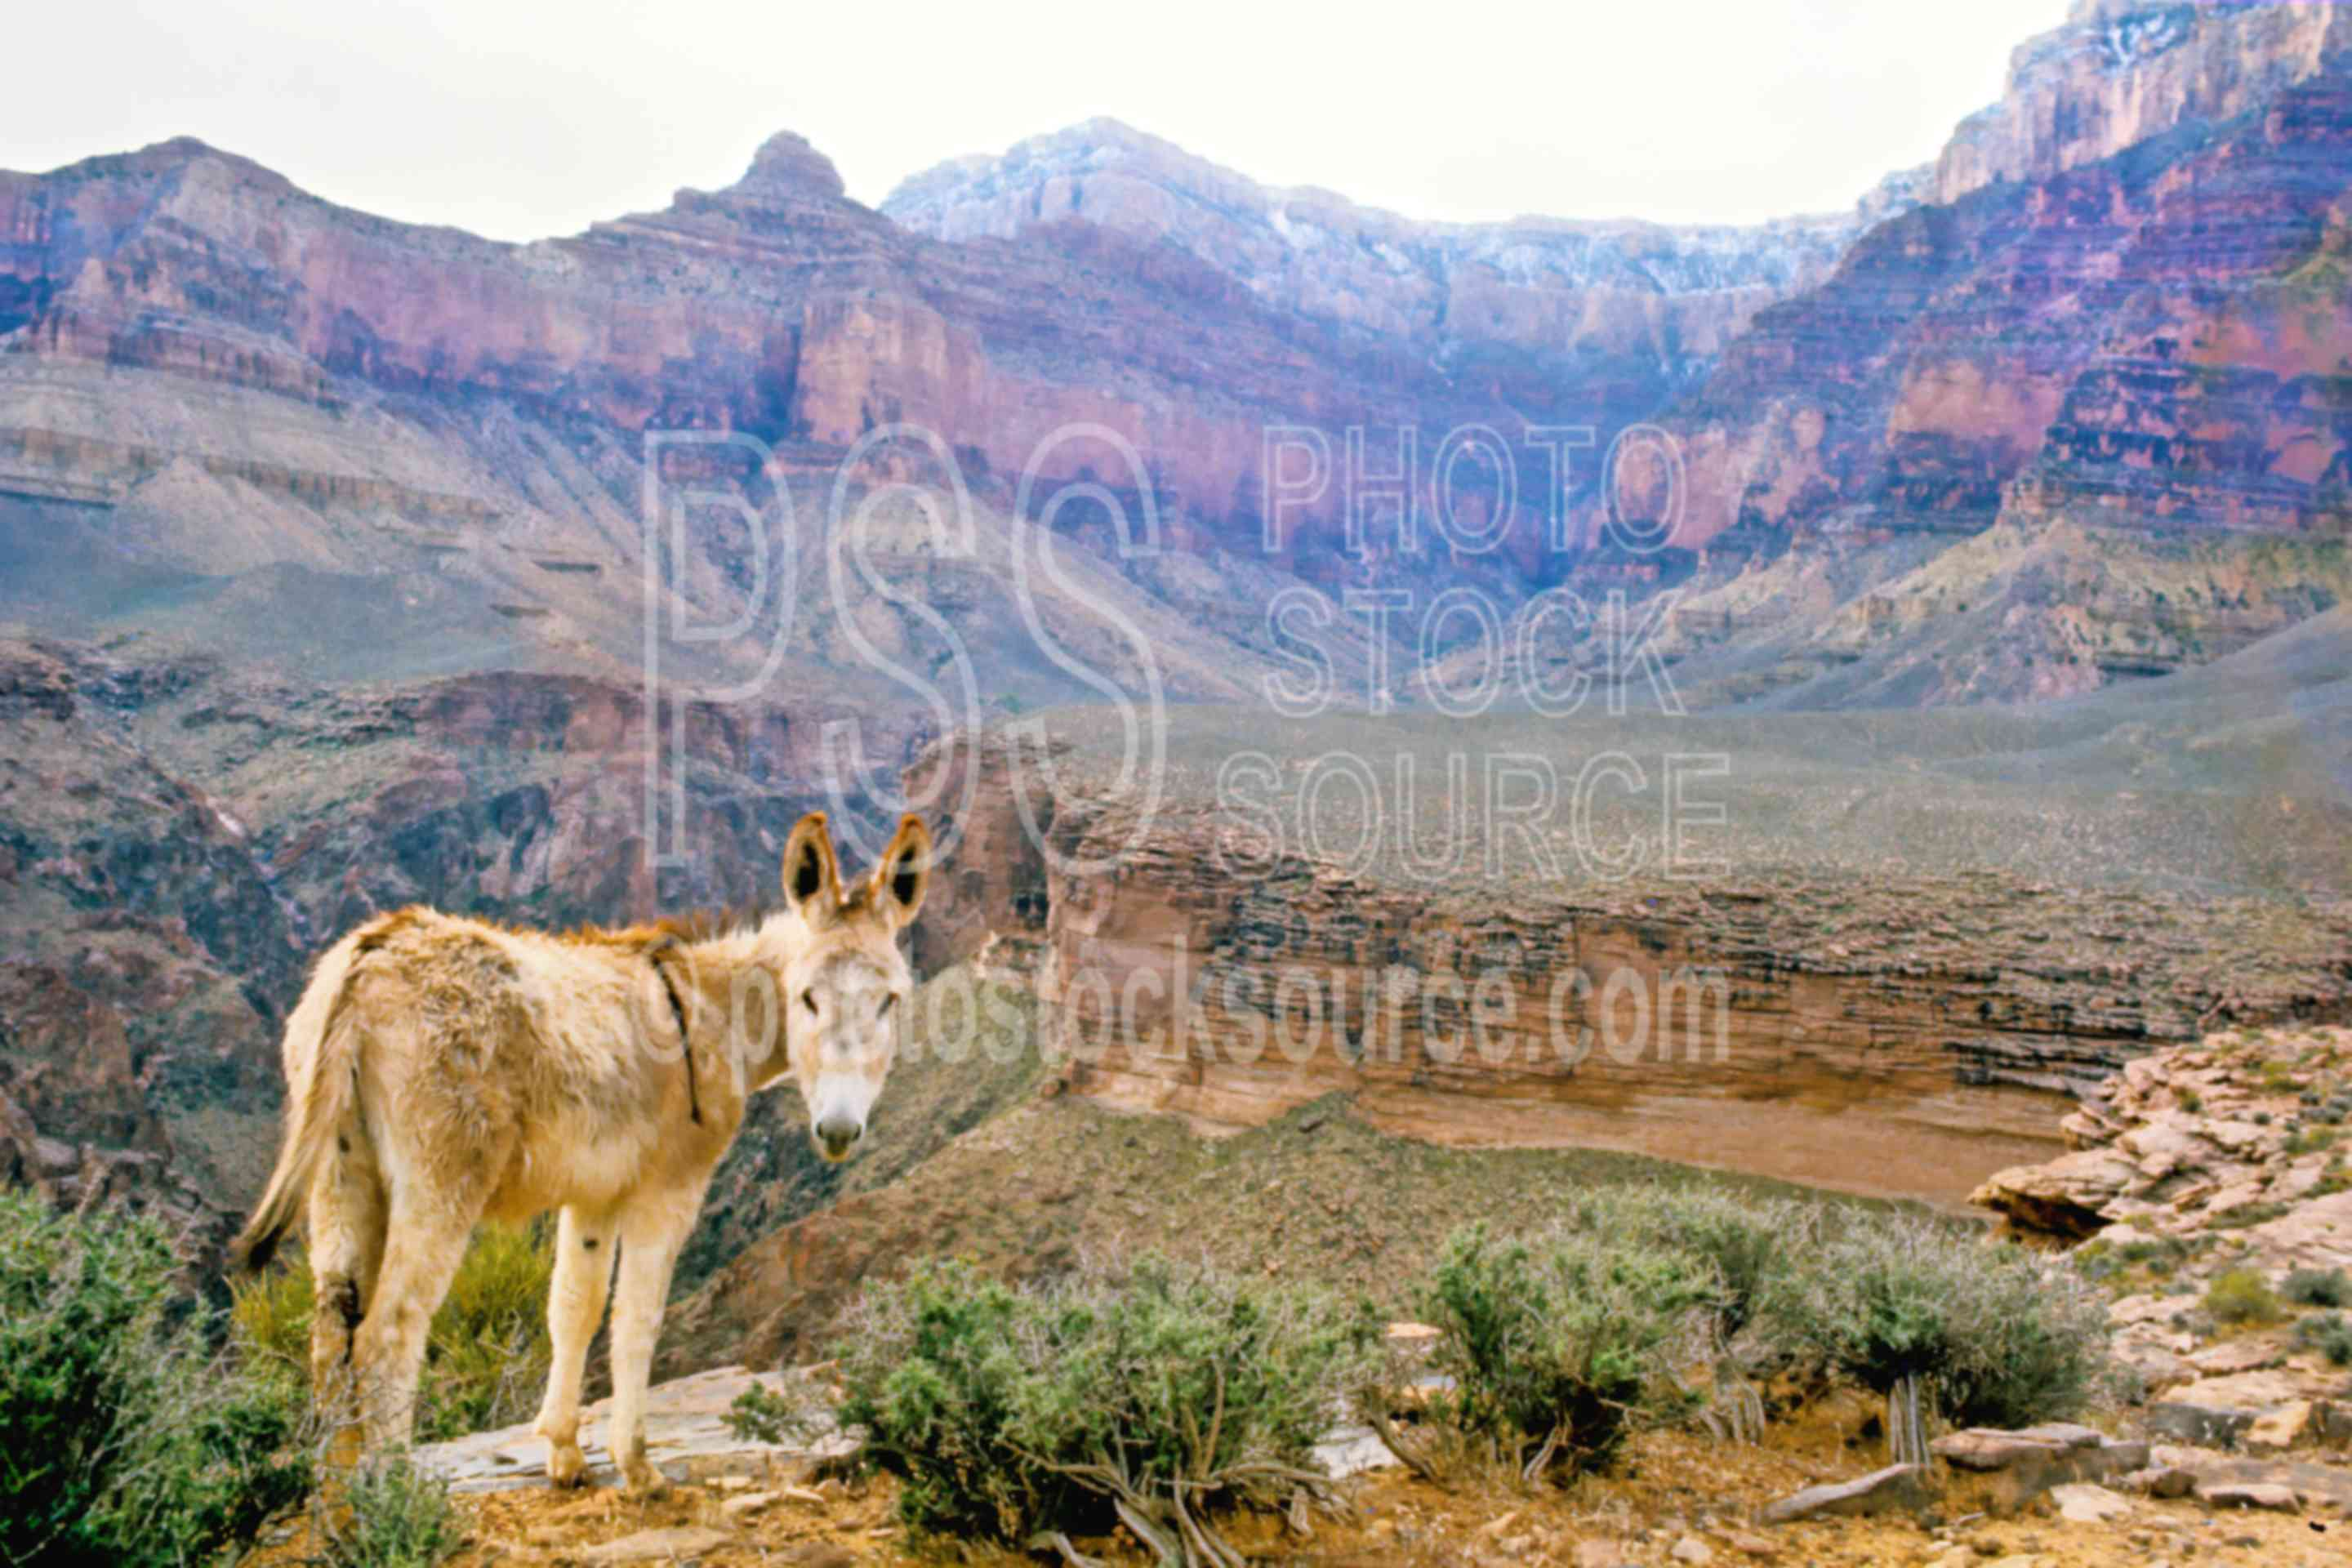 Wild Mule,mule,plateau point,usas,national park,nature,national parks,animals